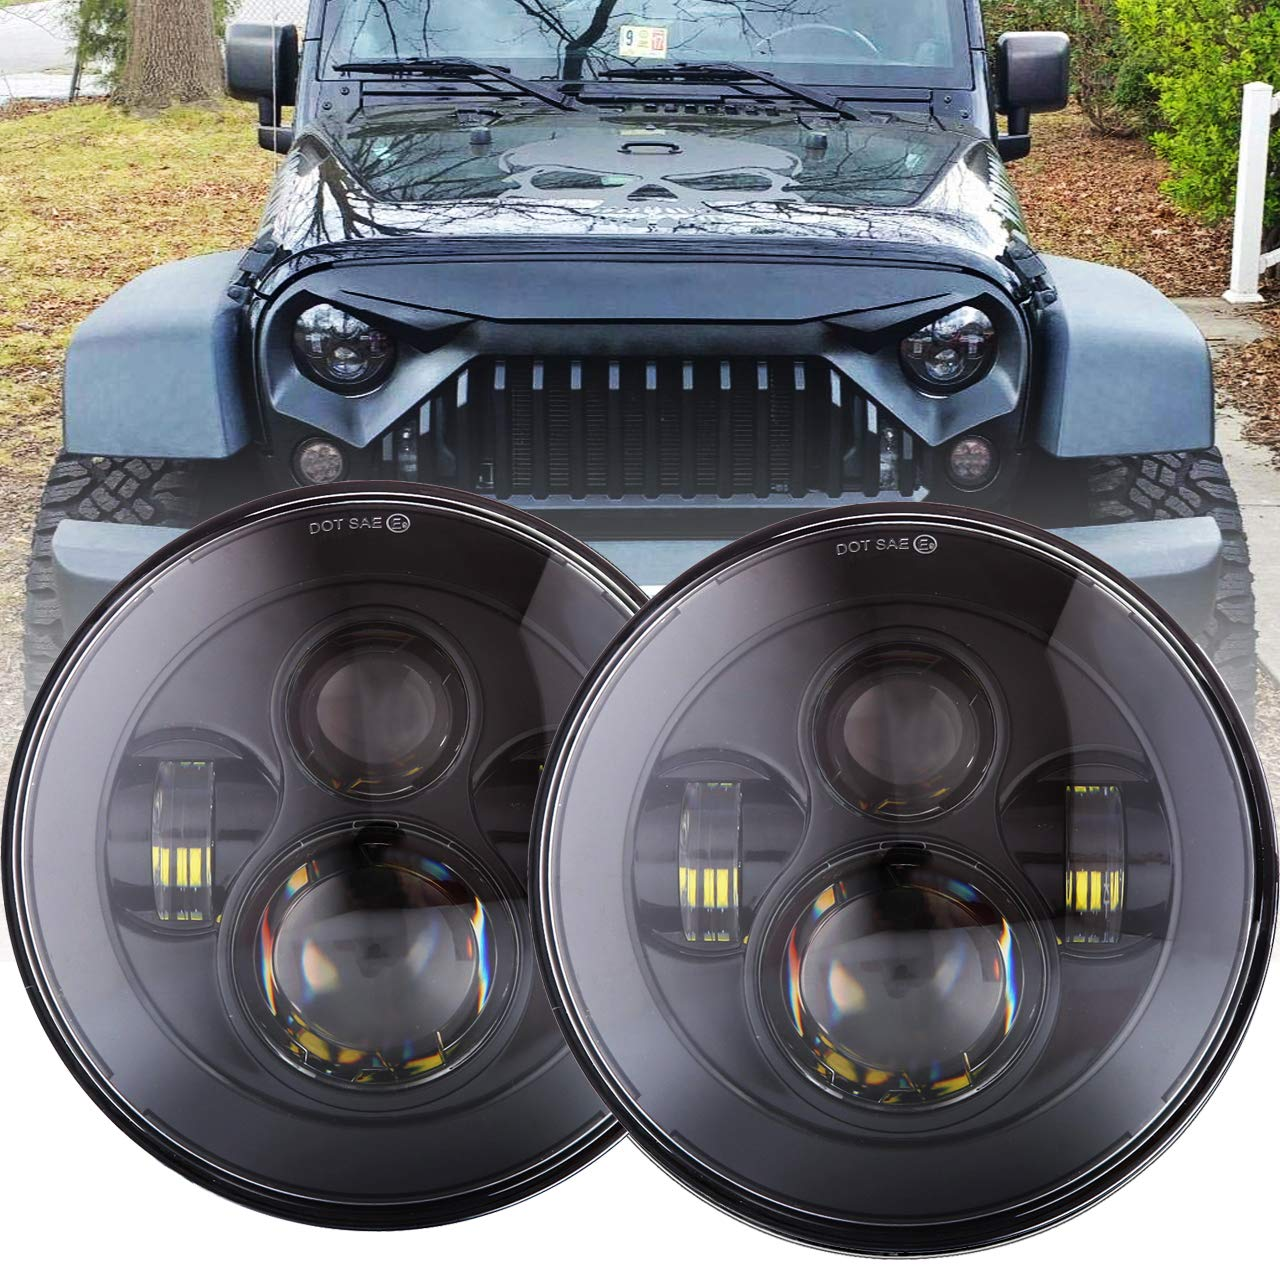 DOT Approved 90W 7 Inch Round LED Headlight High Low Beam for Jeep Wrangler 97-2017 JK TJ LJ JKU Rubicon Sahara Hummer H1 H2 Toyota Land Cruiser Dodge Dakota 2 PCS Black by BICYACO